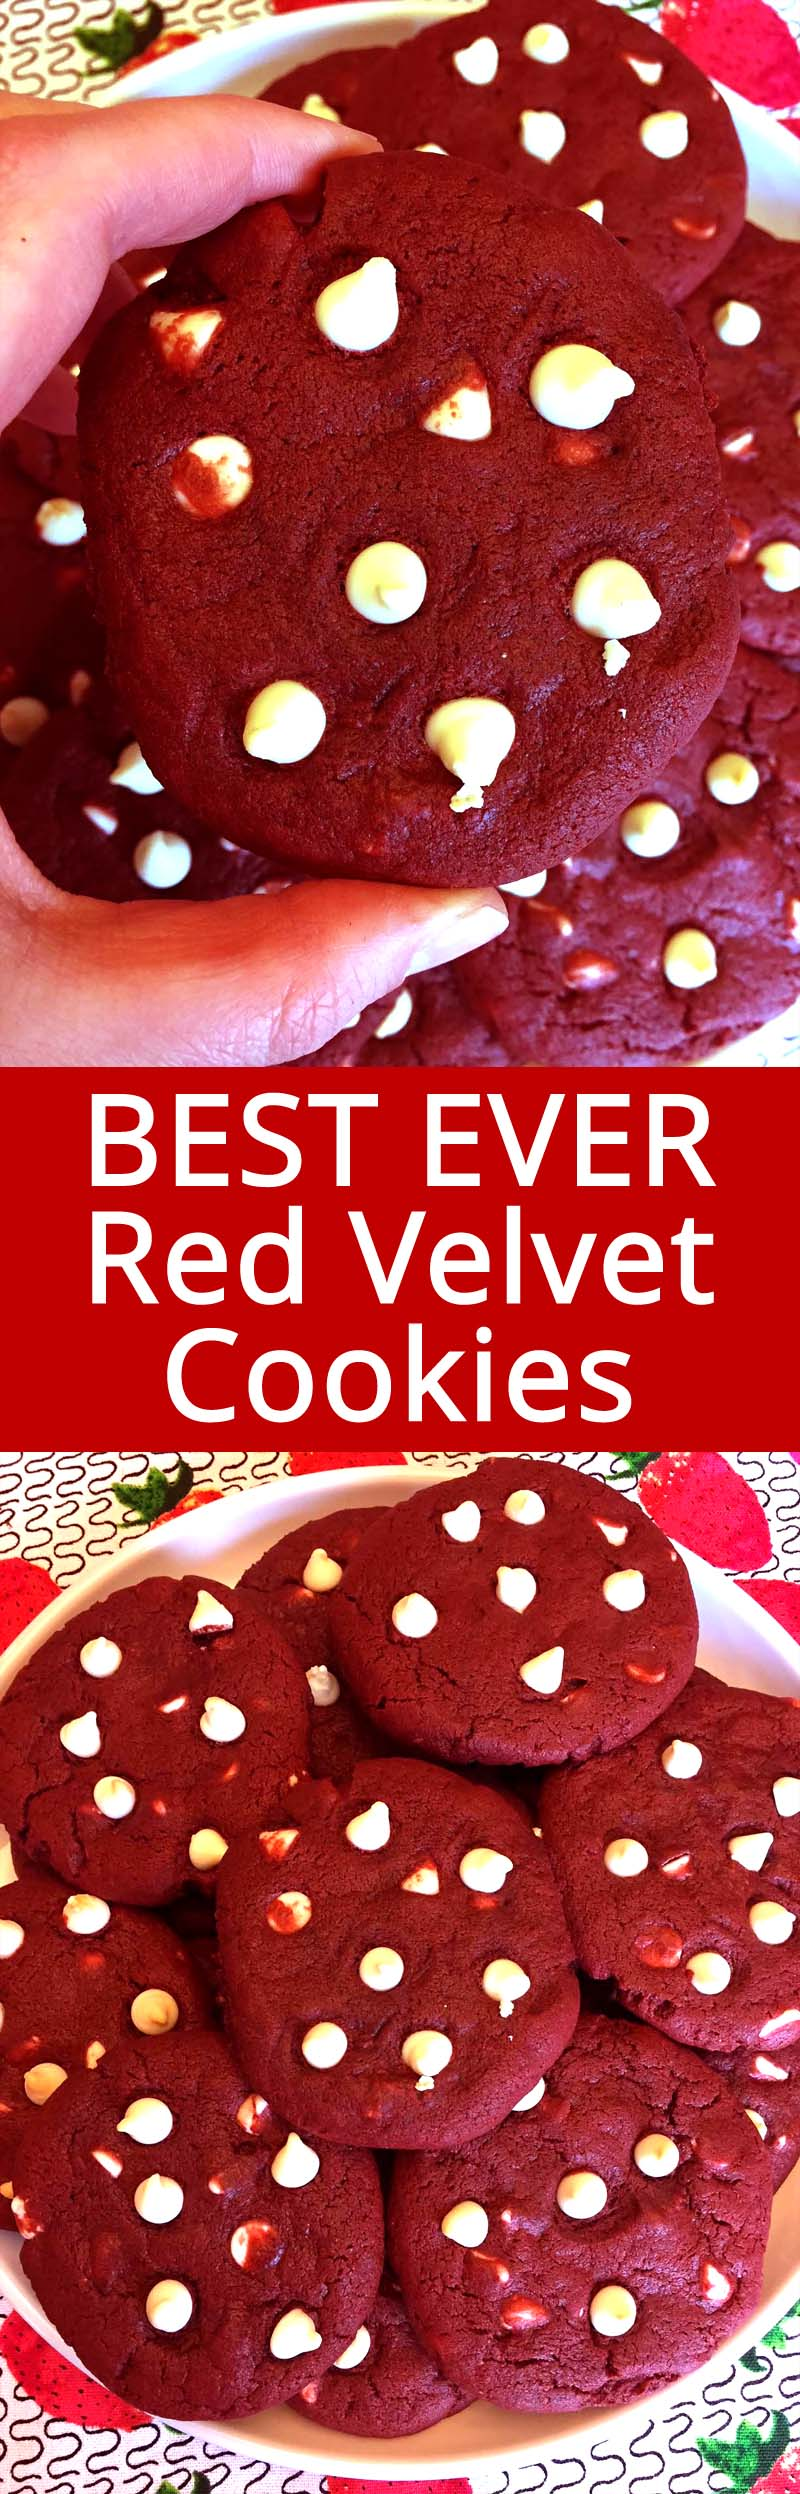 These red velvet cookies with white chocolate chips are simply amazing! They are so soft and delicious, you won't stop eating them until you eat the whole batch! Once you try this epic red velvet cookies recipe, you'll never make them any other way!